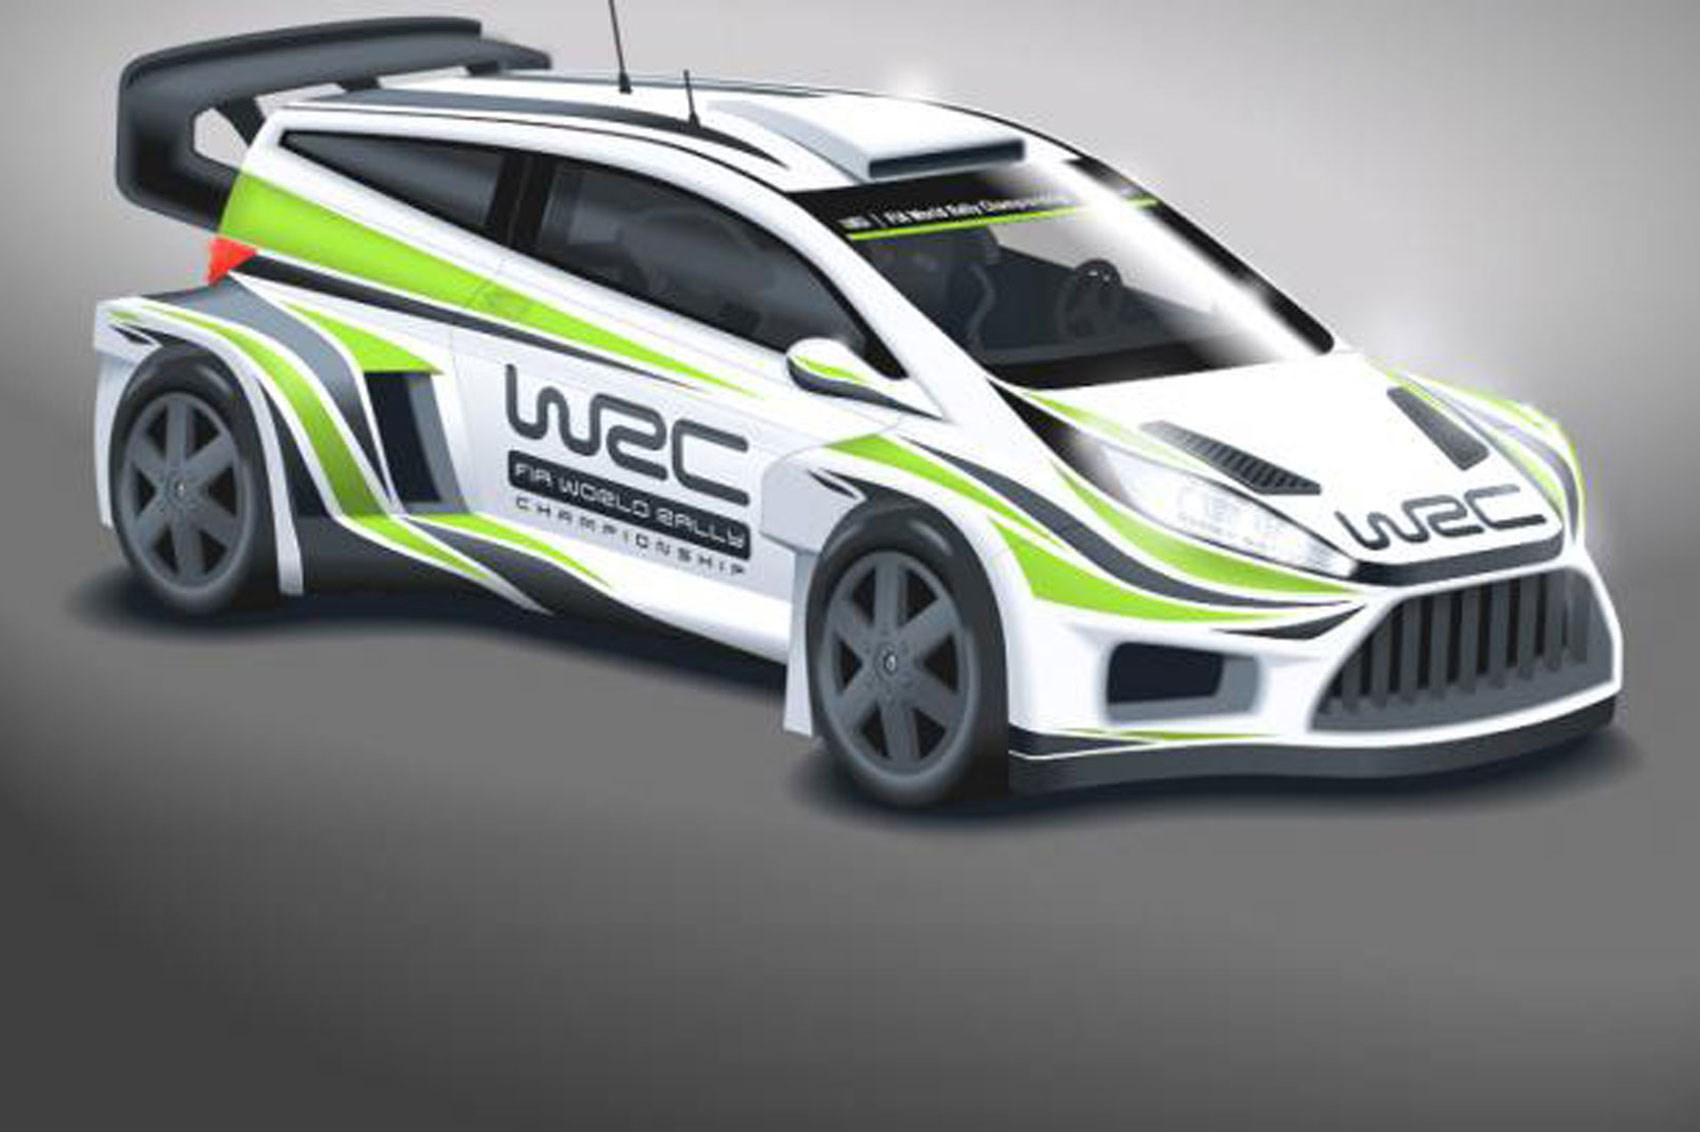 Ultrablogus  Marvelous Wild New Look For Wrc Cars In  By Car Magazine With Fascinating Wrc Cars Will Get Wider Bodies Bigger Wings And More Power For  With Beautiful Bmw  Series Convertible Interior Also Seat Leon Cupra R Interior In Addition Recaro Interior And Hyundai Imax Interior As Well As New Audi A Interior Additionally Forester Interior From Carmagazinecouk With Ultrablogus  Fascinating Wild New Look For Wrc Cars In  By Car Magazine With Beautiful Wrc Cars Will Get Wider Bodies Bigger Wings And More Power For  And Marvelous Bmw  Series Convertible Interior Also Seat Leon Cupra R Interior In Addition Recaro Interior From Carmagazinecouk